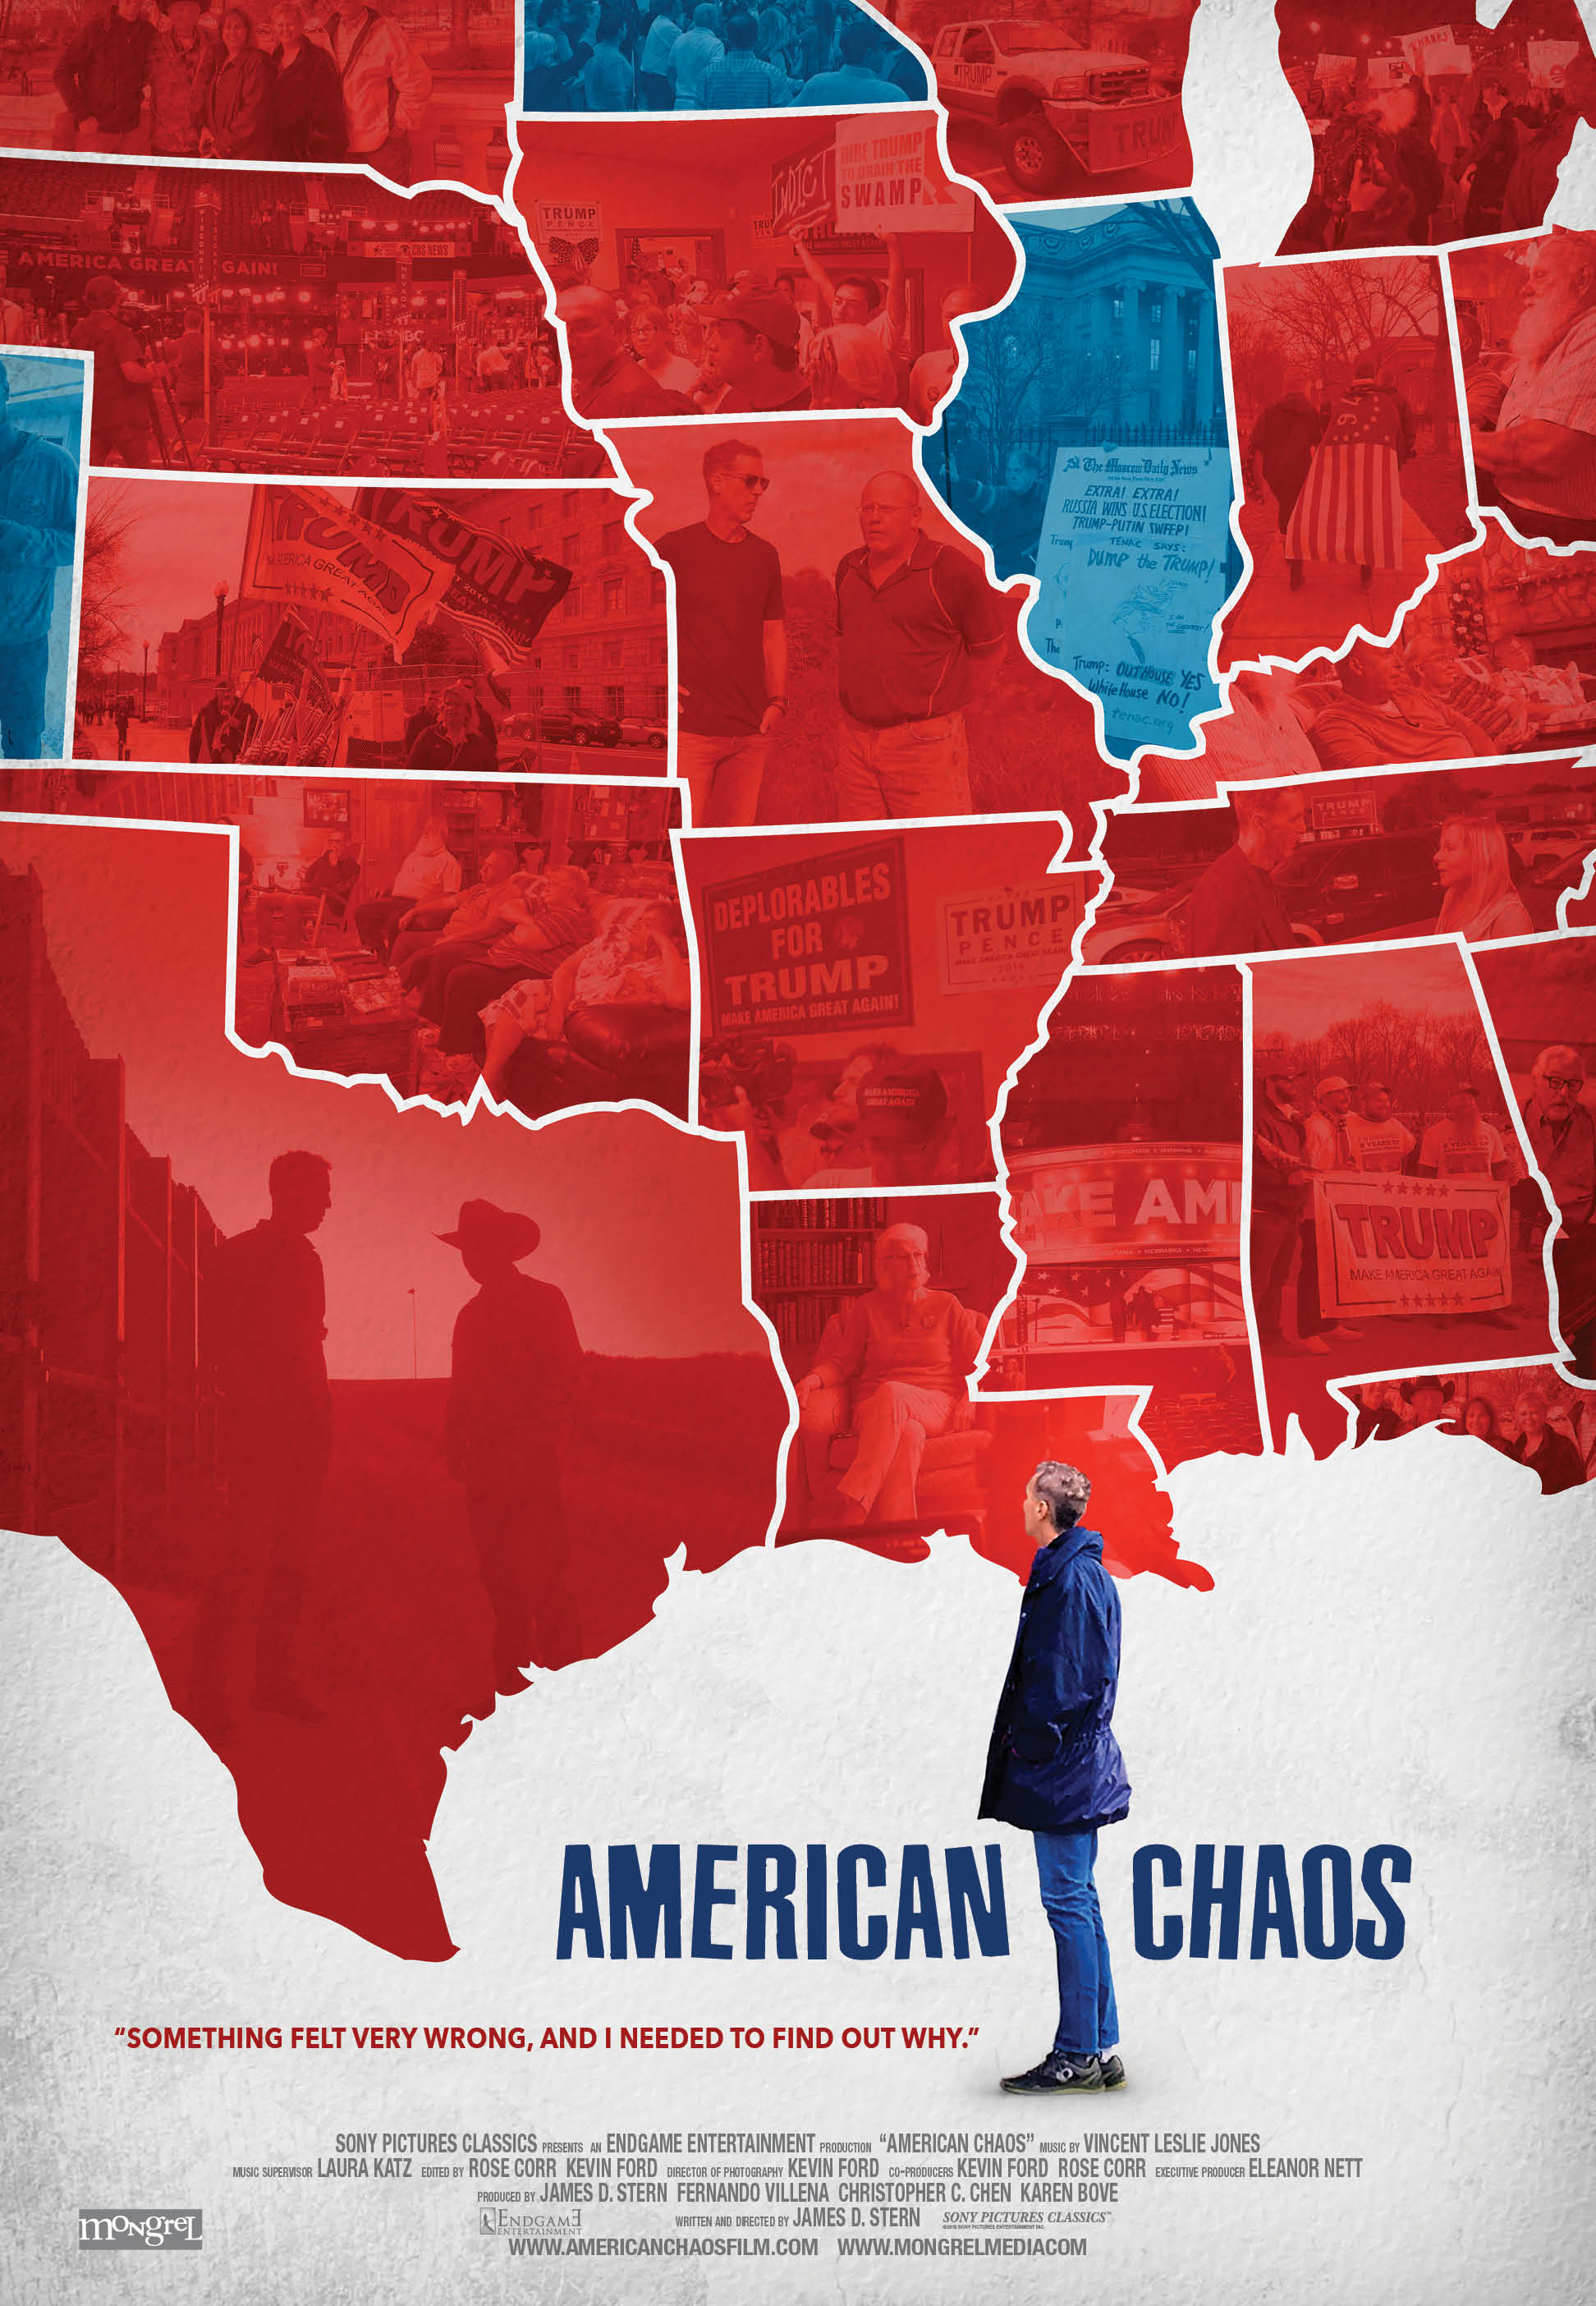 American Chaos For Six Months Before The Election, Director Jim Stern  Traveled Red States Asking About Donald Trumpu0027s Appeal, And Why Voters Were  Untroubled ...